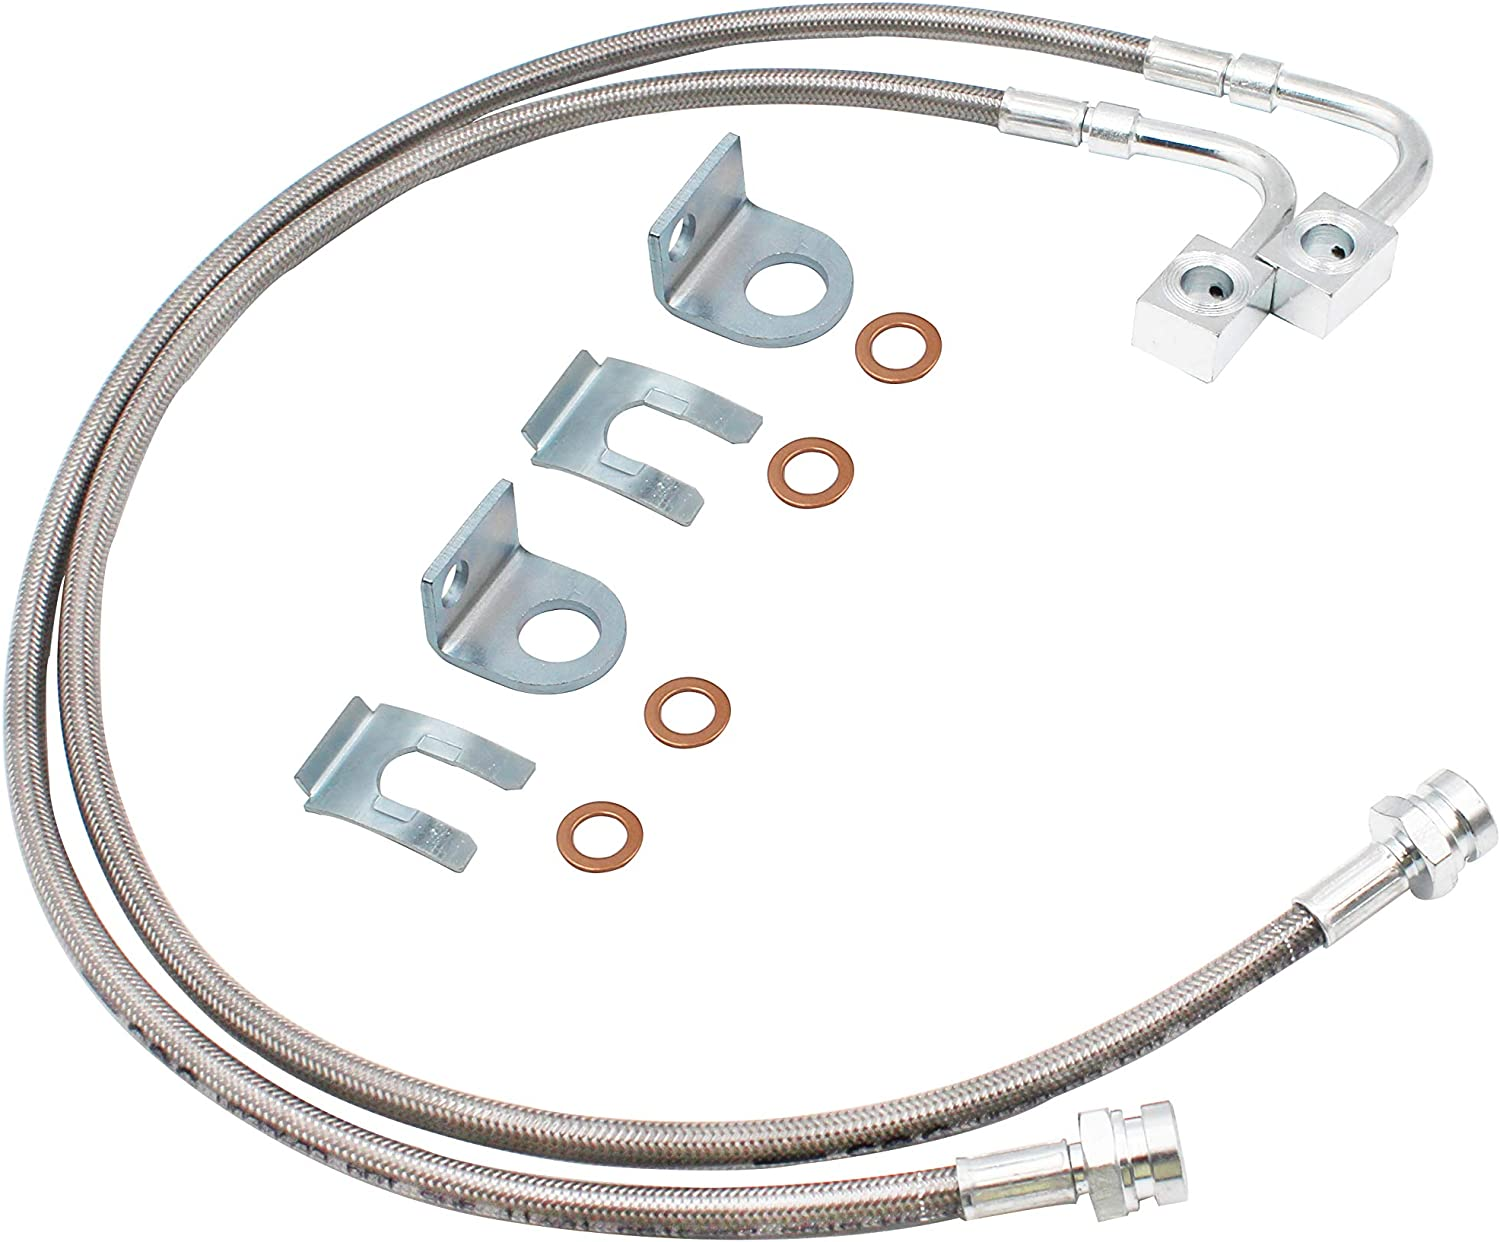 89708 Rear Extended Stainless Brake Lines for 4-6 of Lift suitable for 2007-2017 4WD Jeep Wrangler JK; 2007-2017 4WD//2WD Jeep Wrangler Unlimited JK